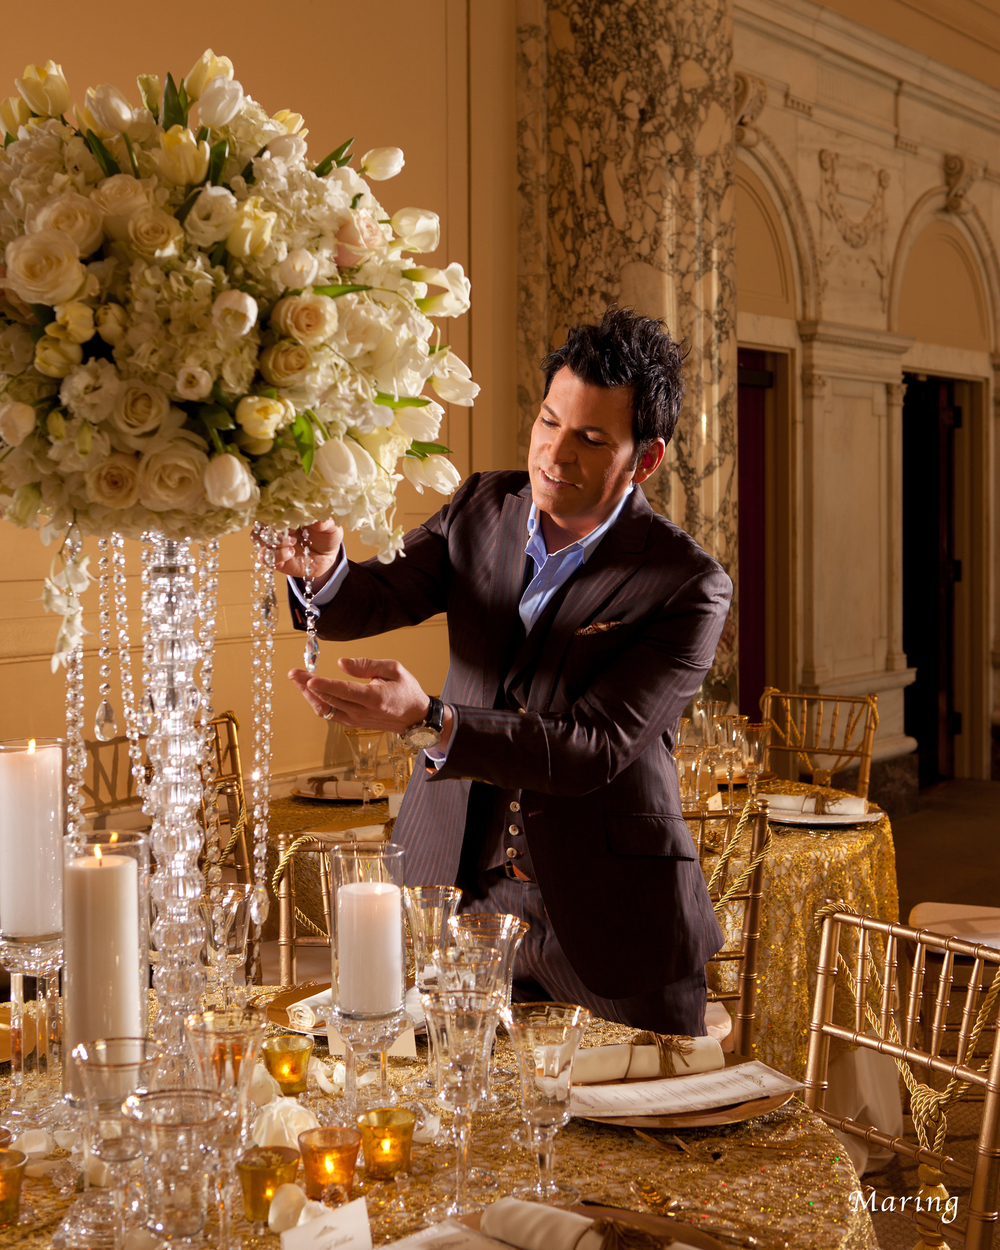 David Tutera putting the finishing touches on a gorgeous design - photo by MARING VISUALS